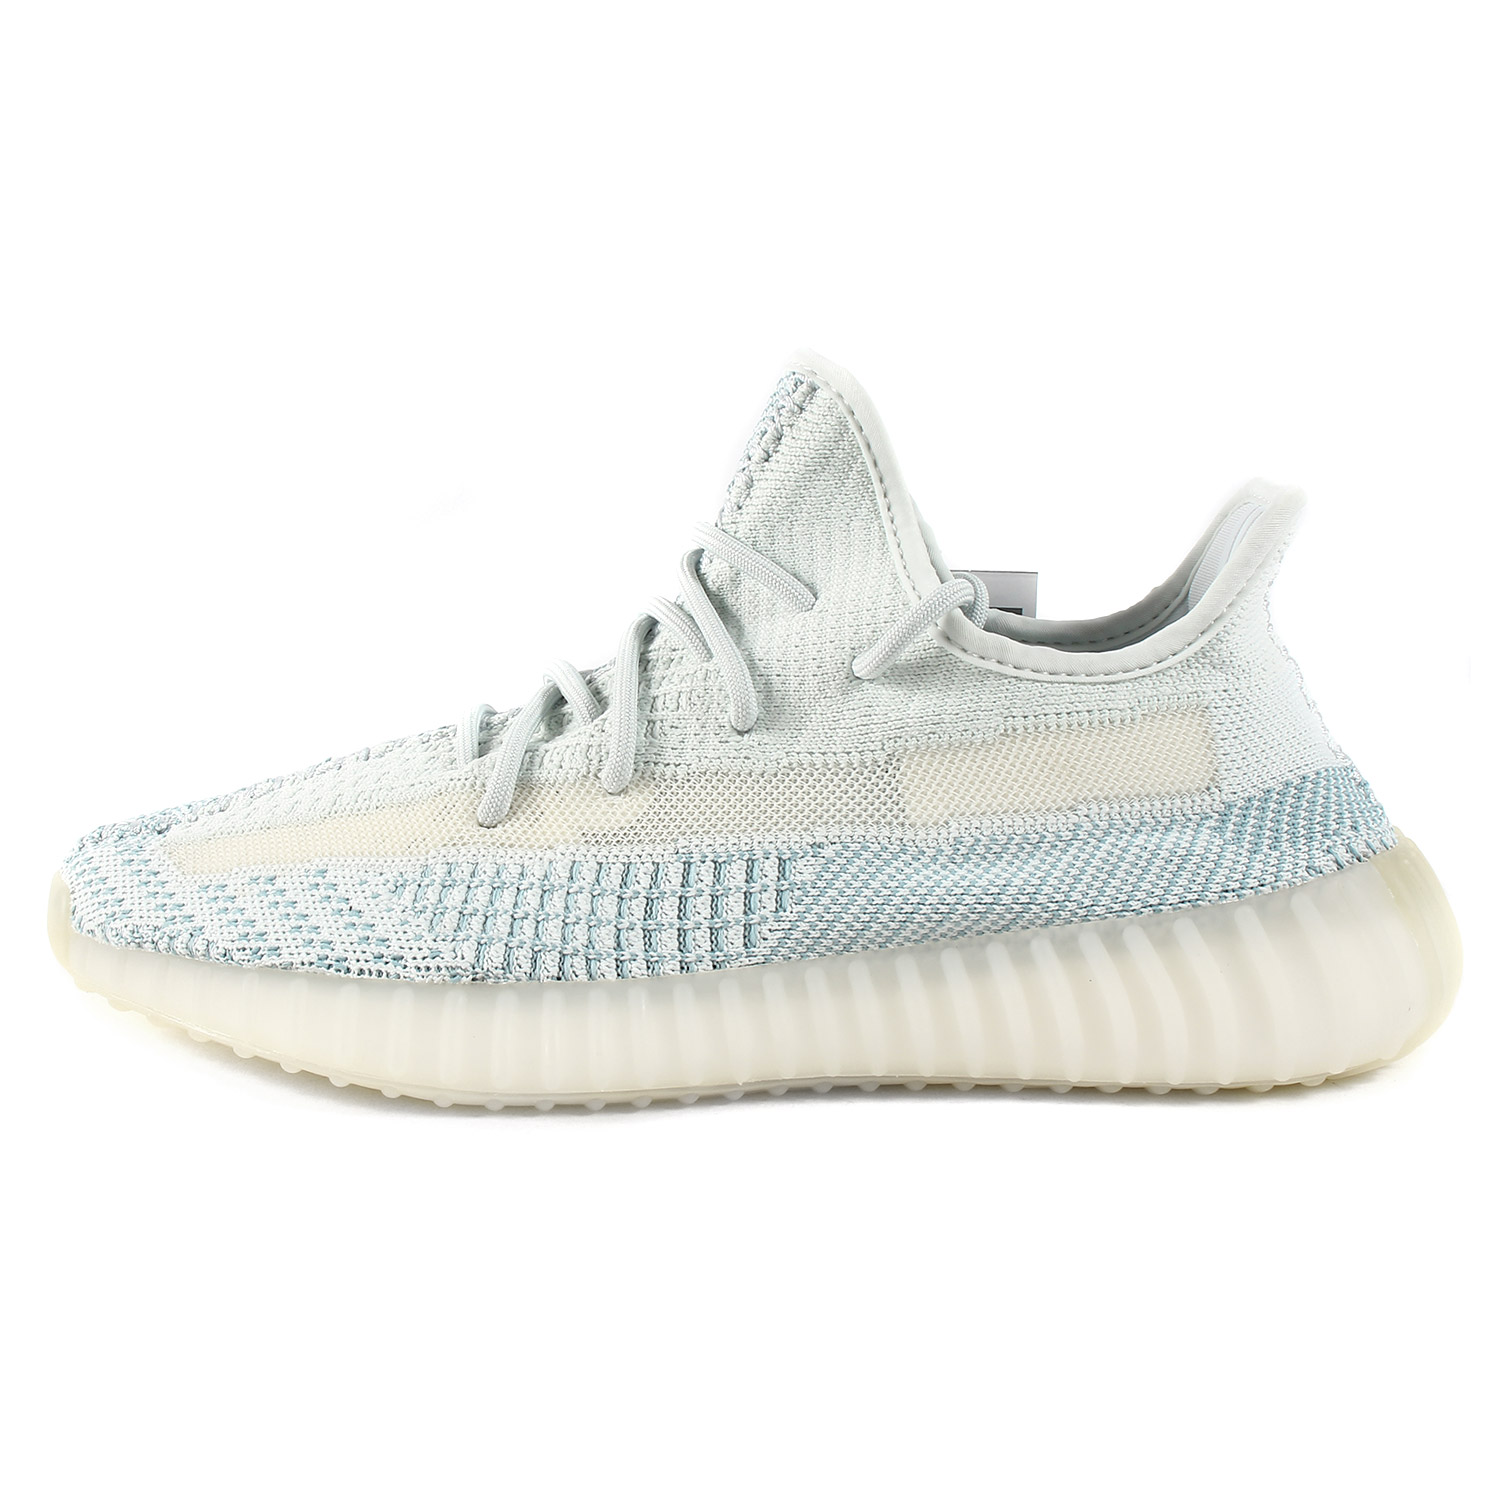 19AW YEEZY BOOST 350 V2 CLOUD WHITE (FW3043)